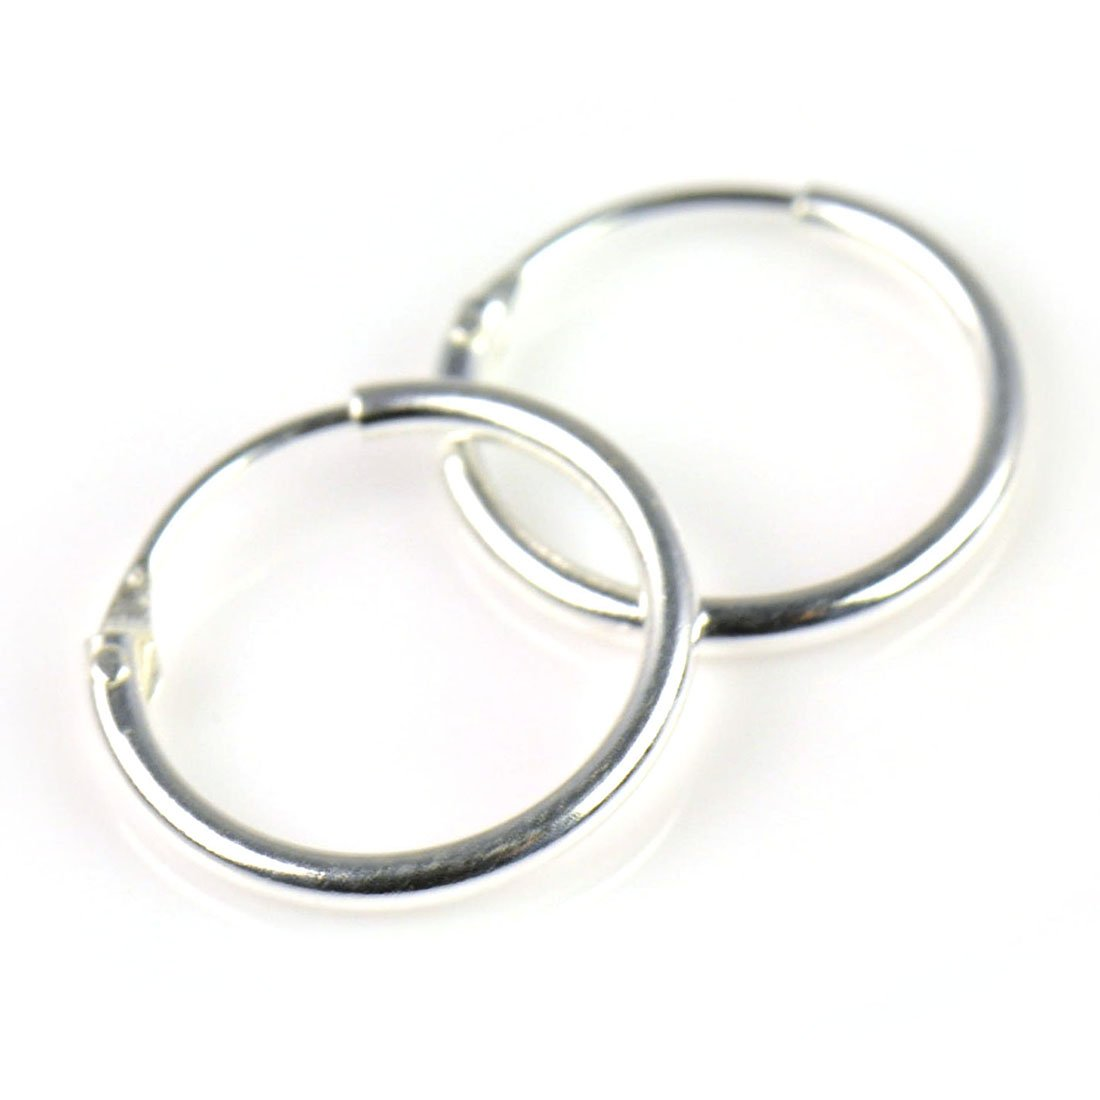 tobi us product the loop earrings silver hoop in jewellery